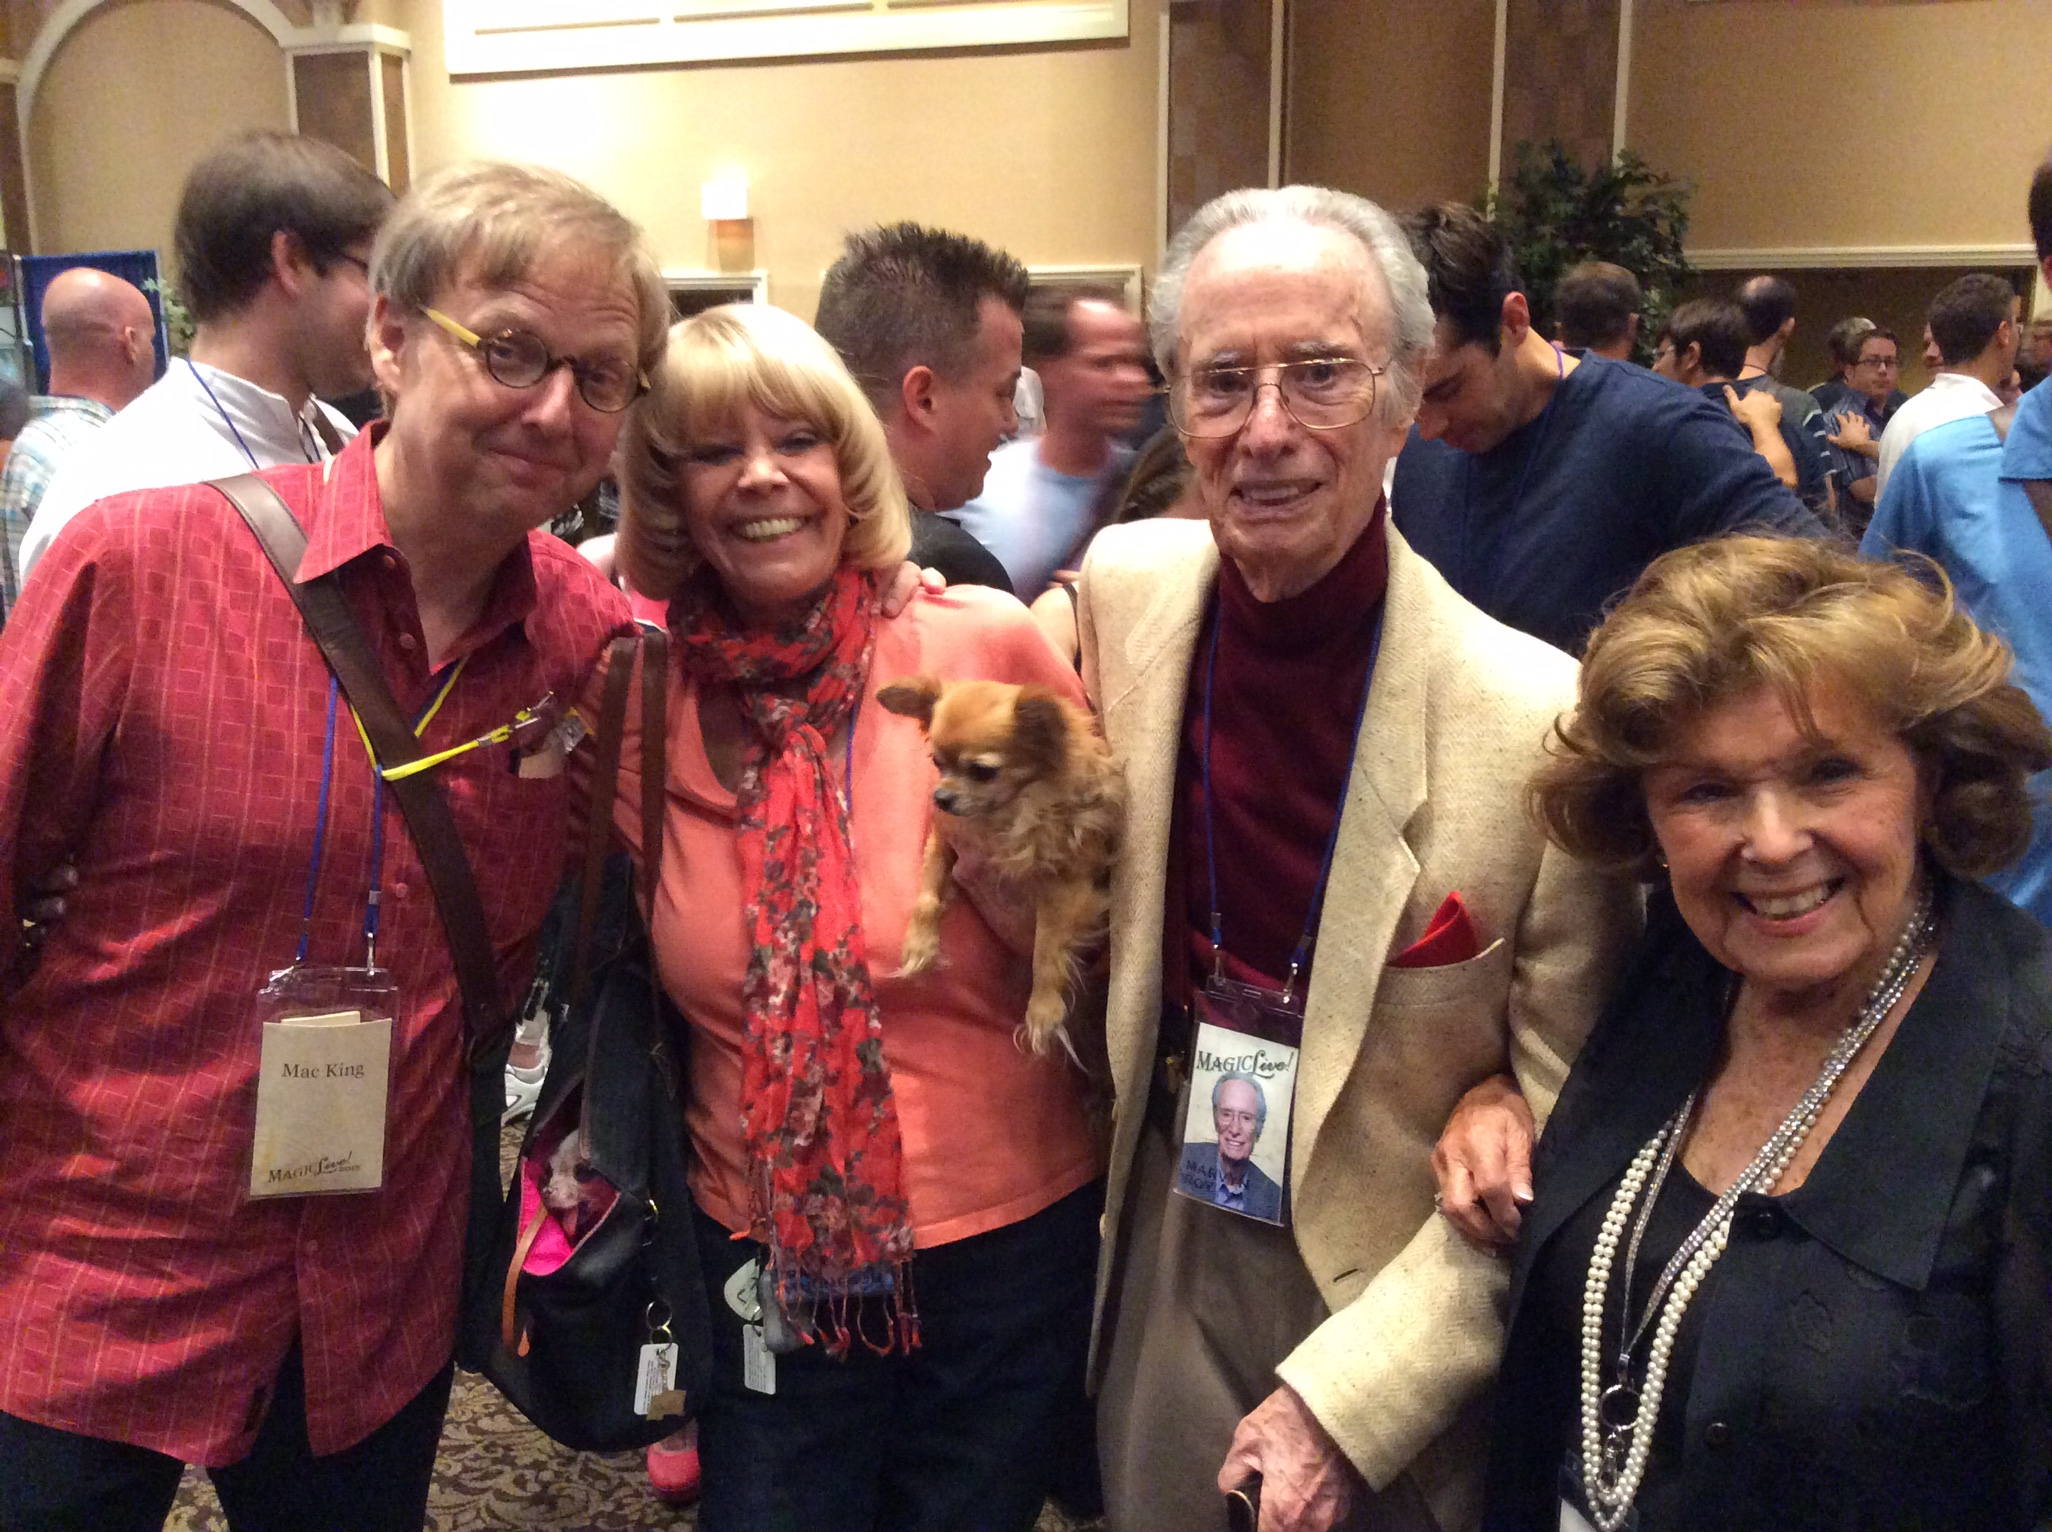 Mac King, Pam Thompson, Marvin Roy and Mary Naylor Kodell